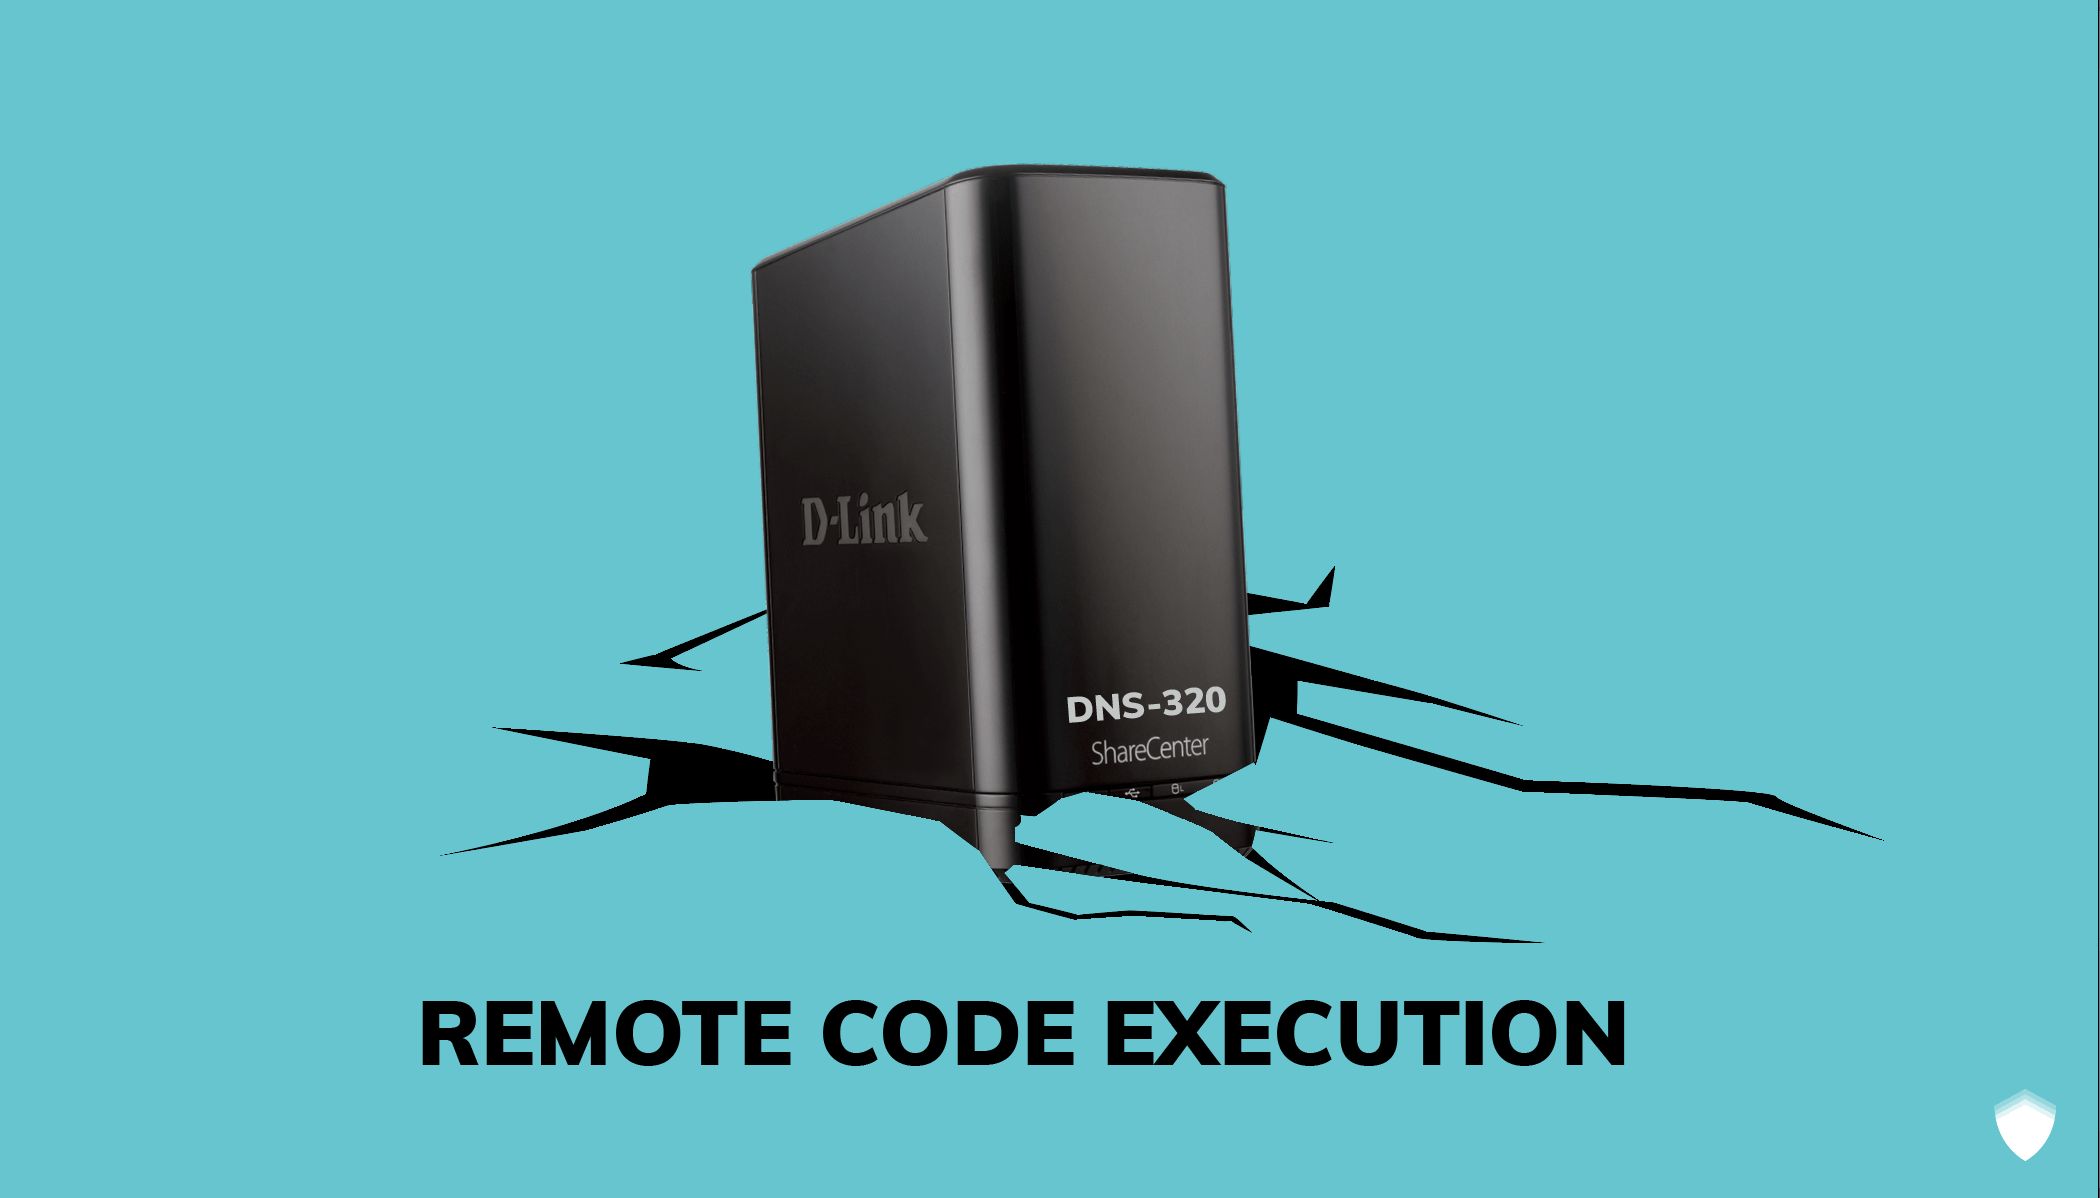 D-Link DNS-320 ShareCenter <= 2.05.B10 - Unauthenticated Remote code execution